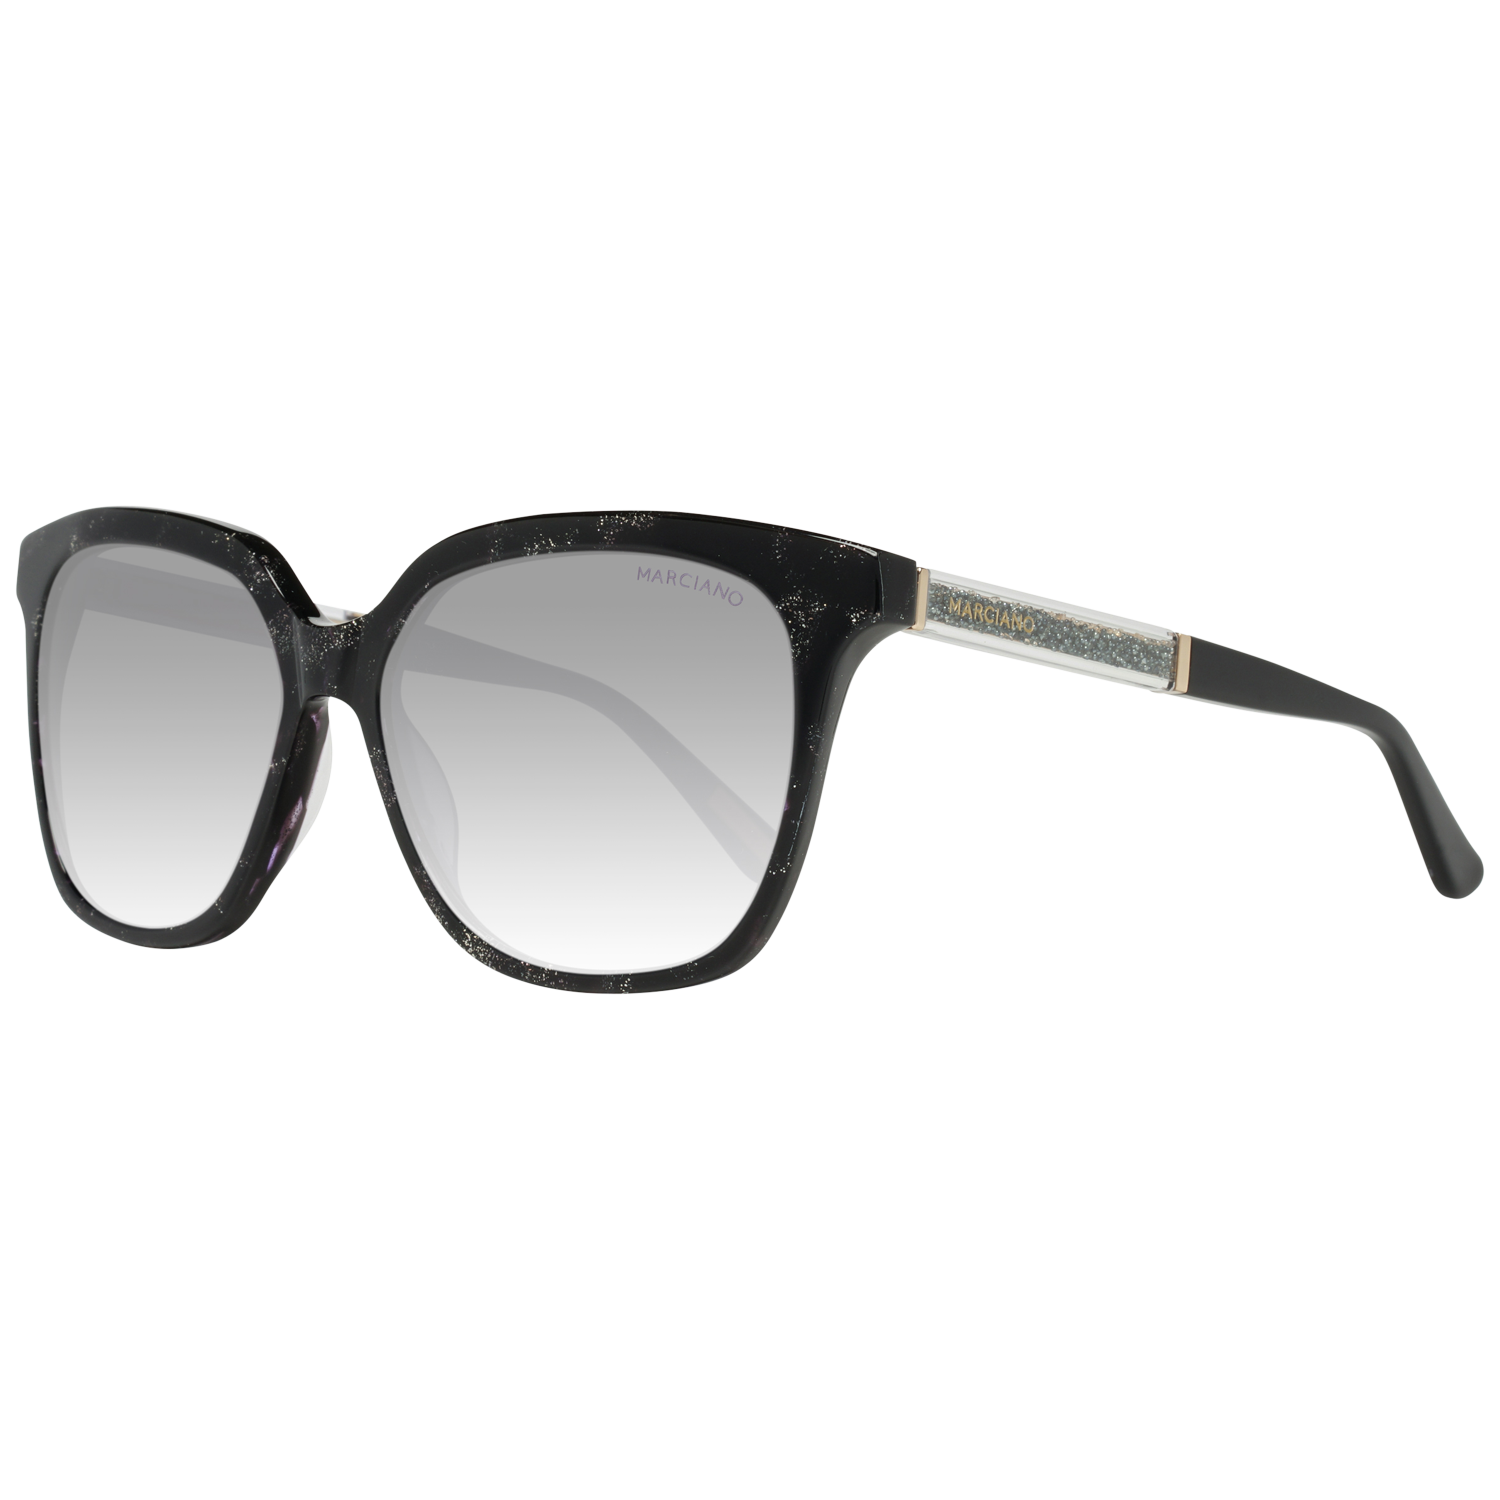 Guess by Marciano Sunglasses GM0769 05C 54 Black